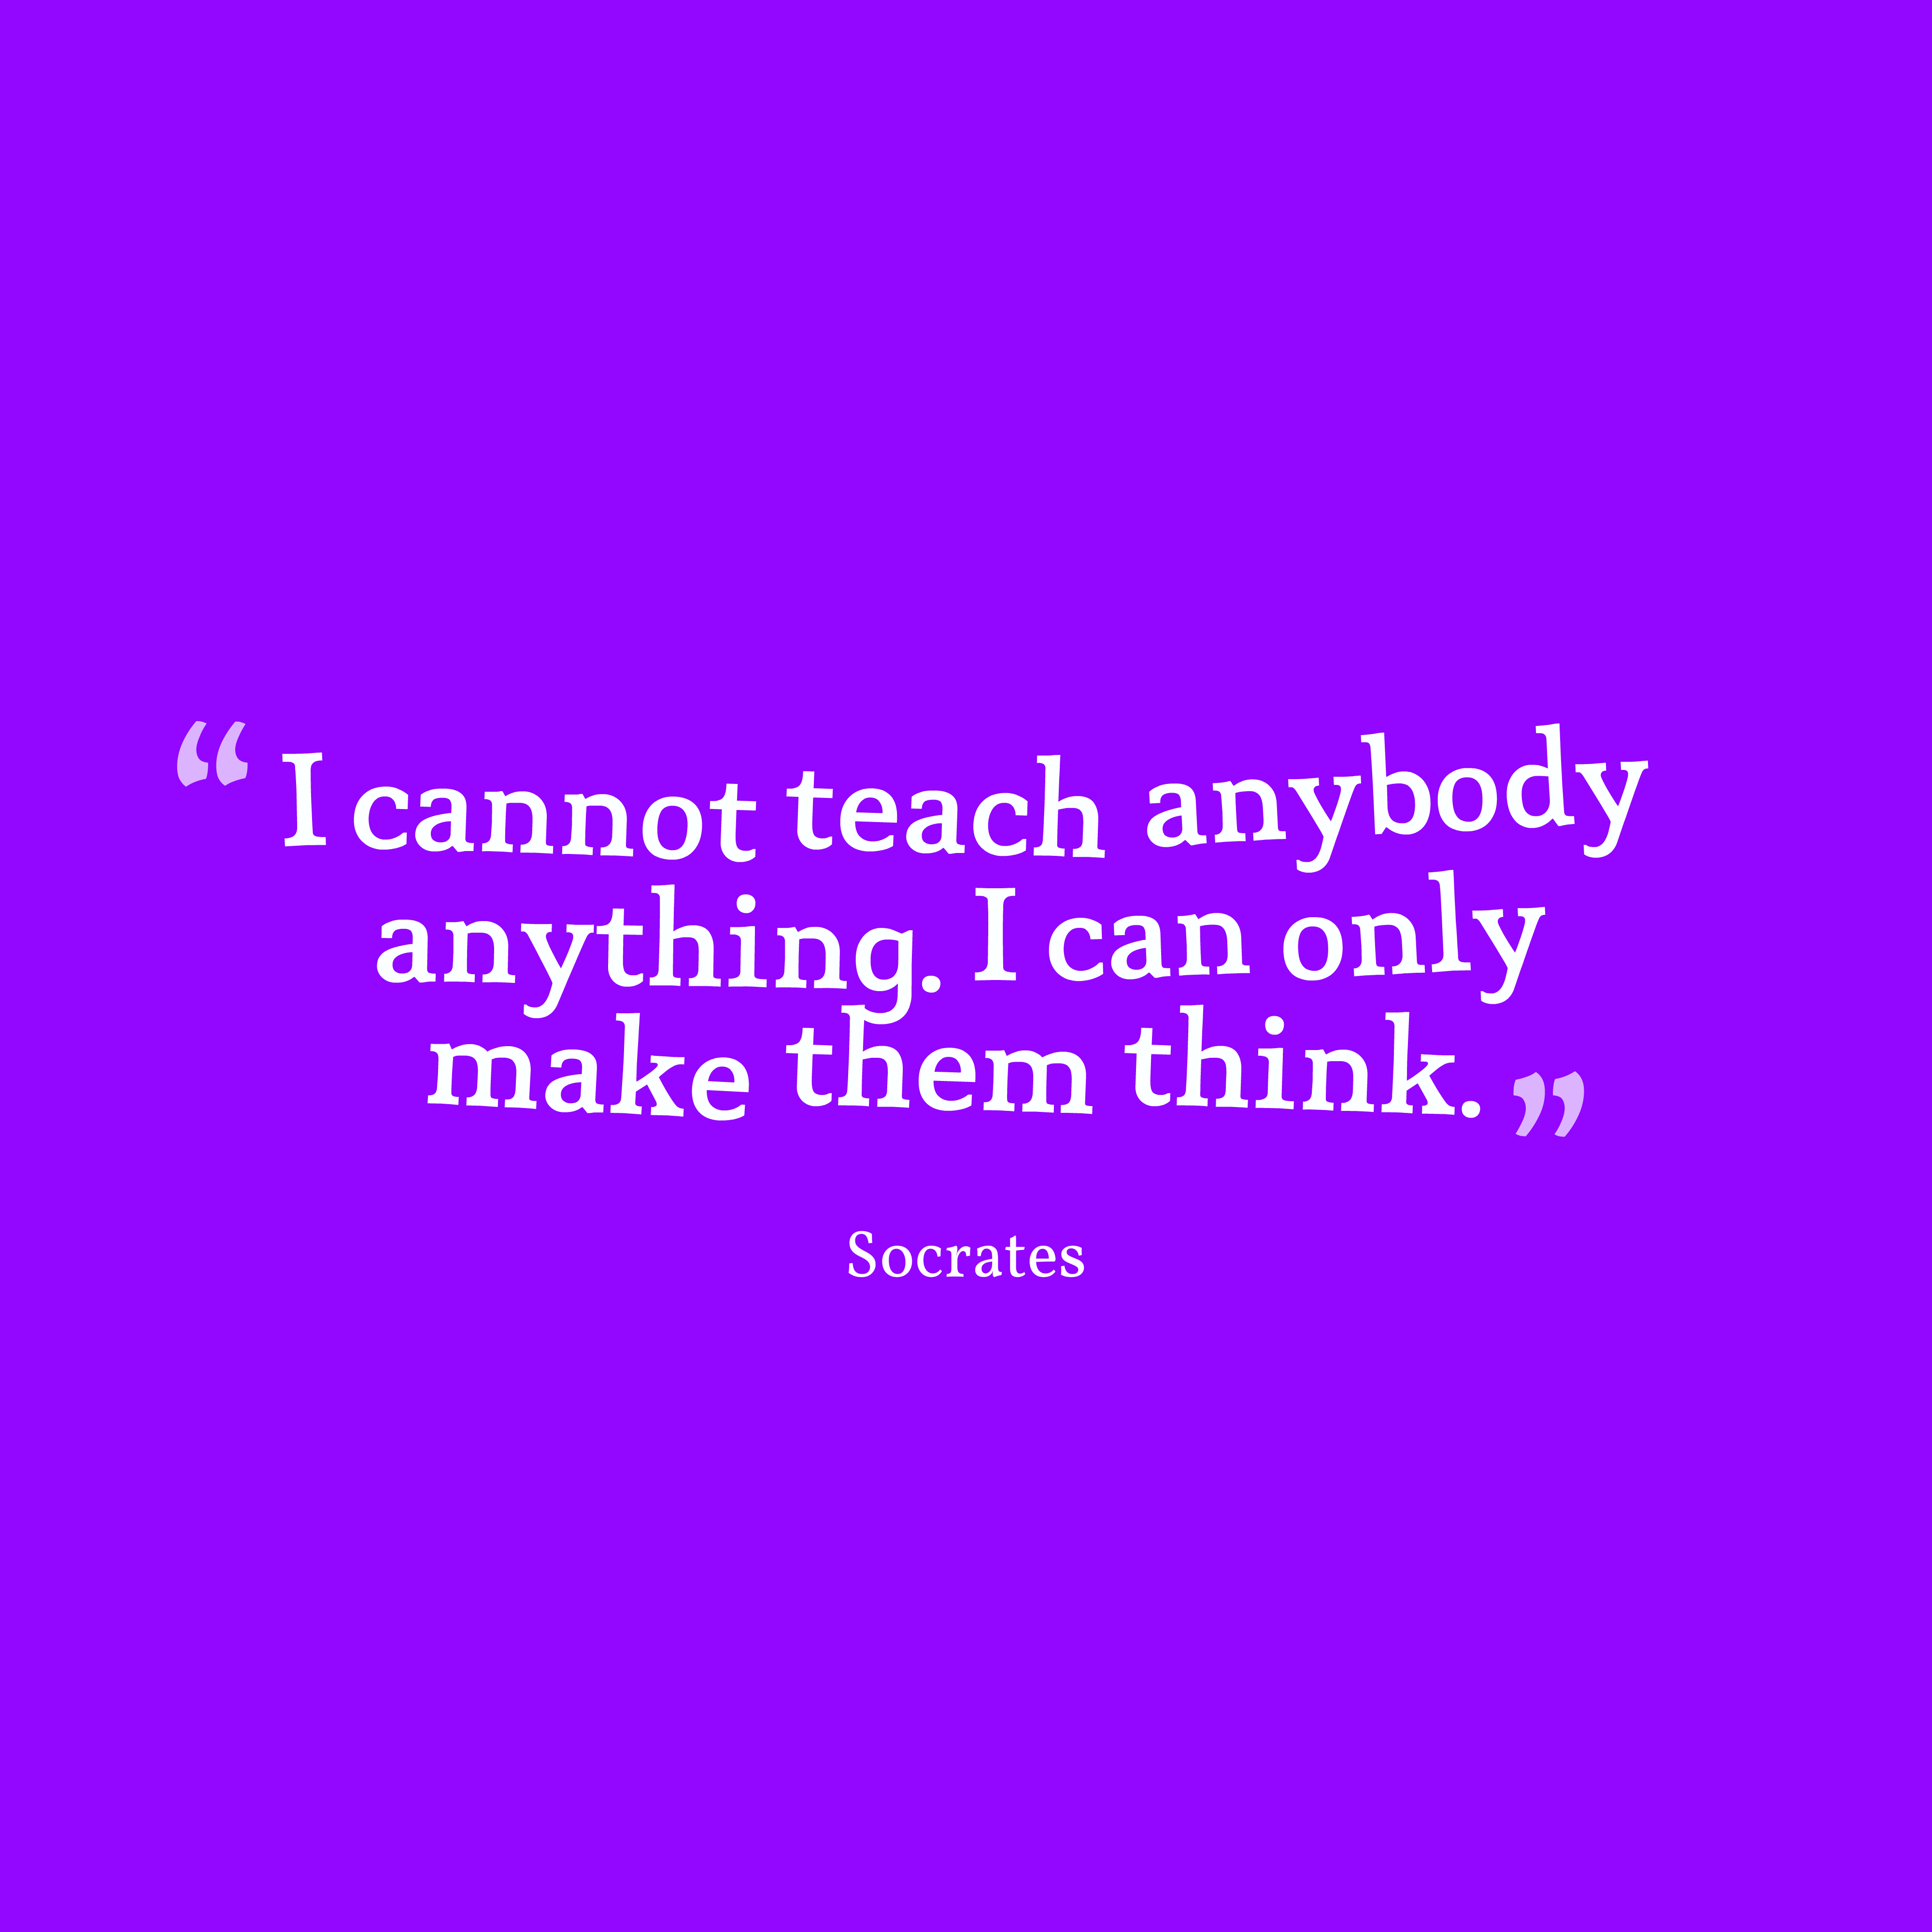 Quotes image of I cannot teach anybody anything. I can only make them think.